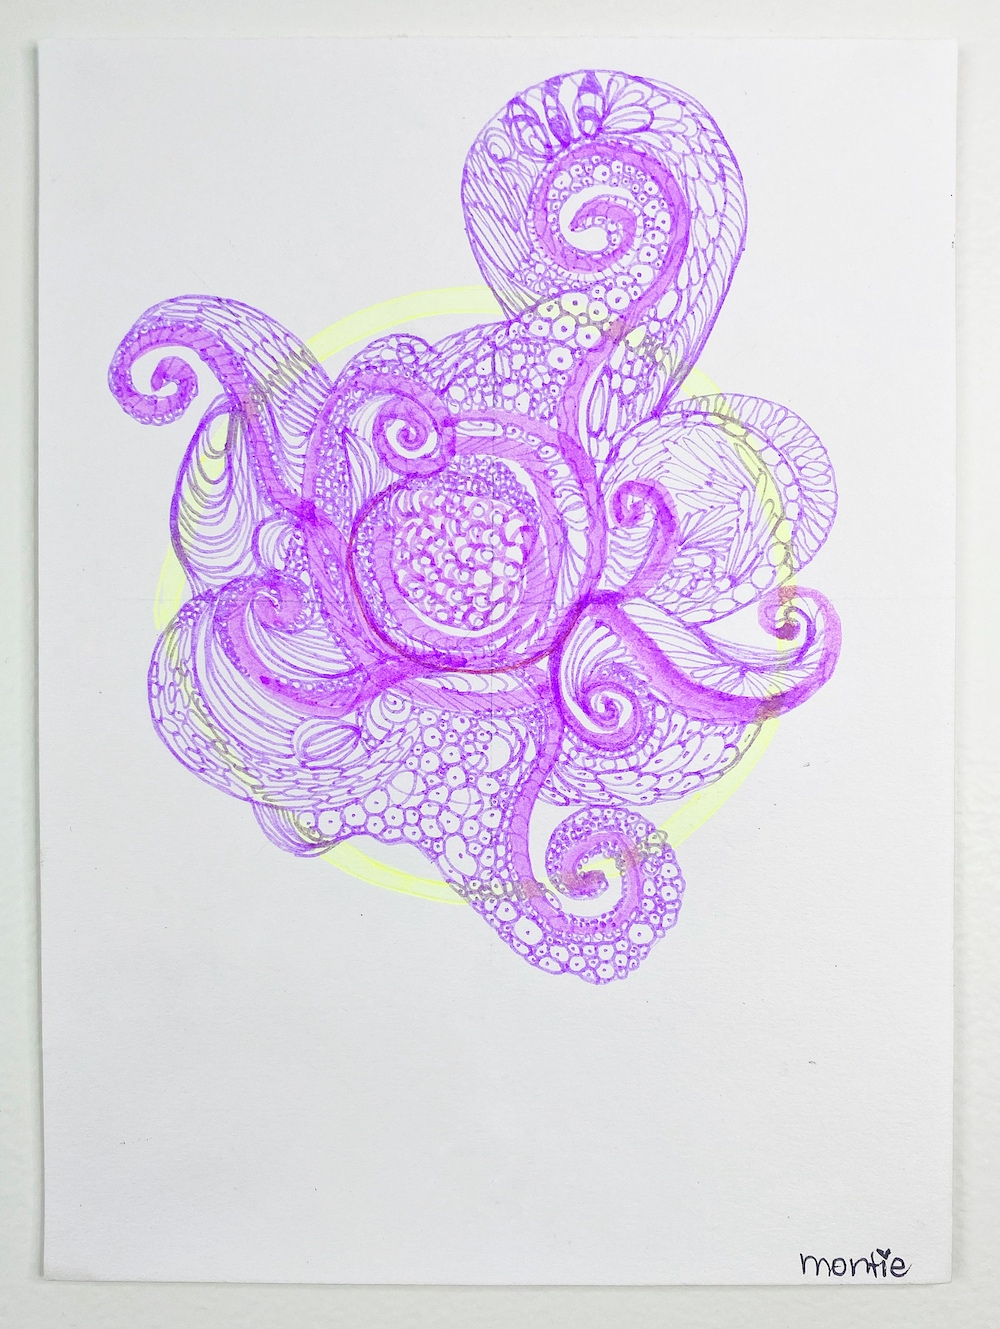 montie, life is the bubbles, pen and ink